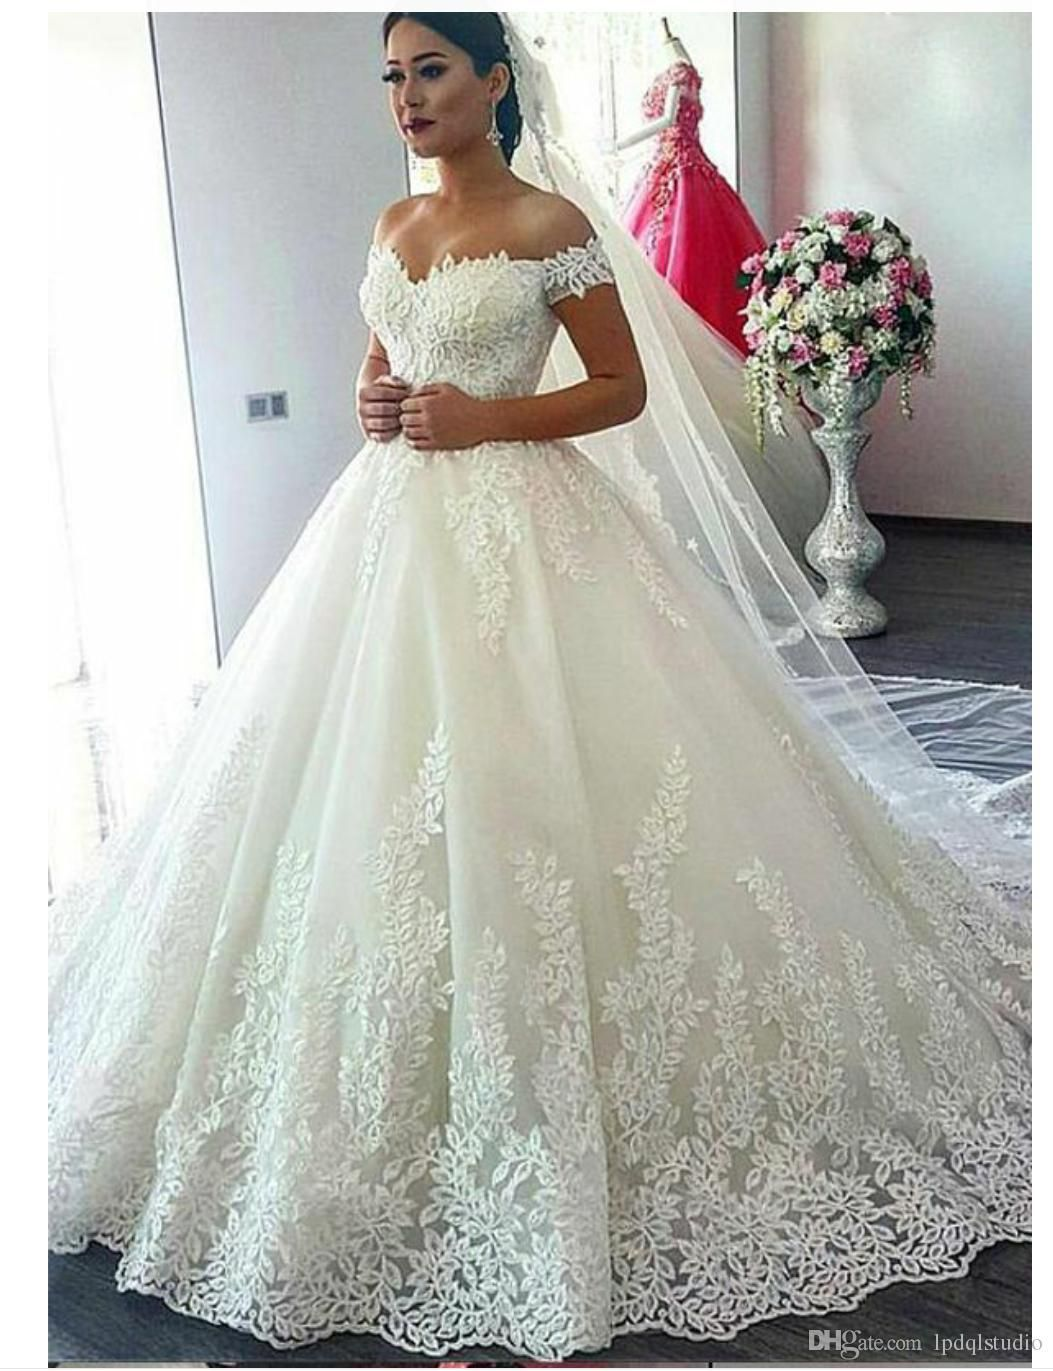 1521d83a84b Sexy Off the Shoulder Ball Gown Wedding Dress Floral Applique with Sequins  Zipper Back Sweep Train Plus Size Wedding Dresses Bridal Gowns Wedding Dress  ...